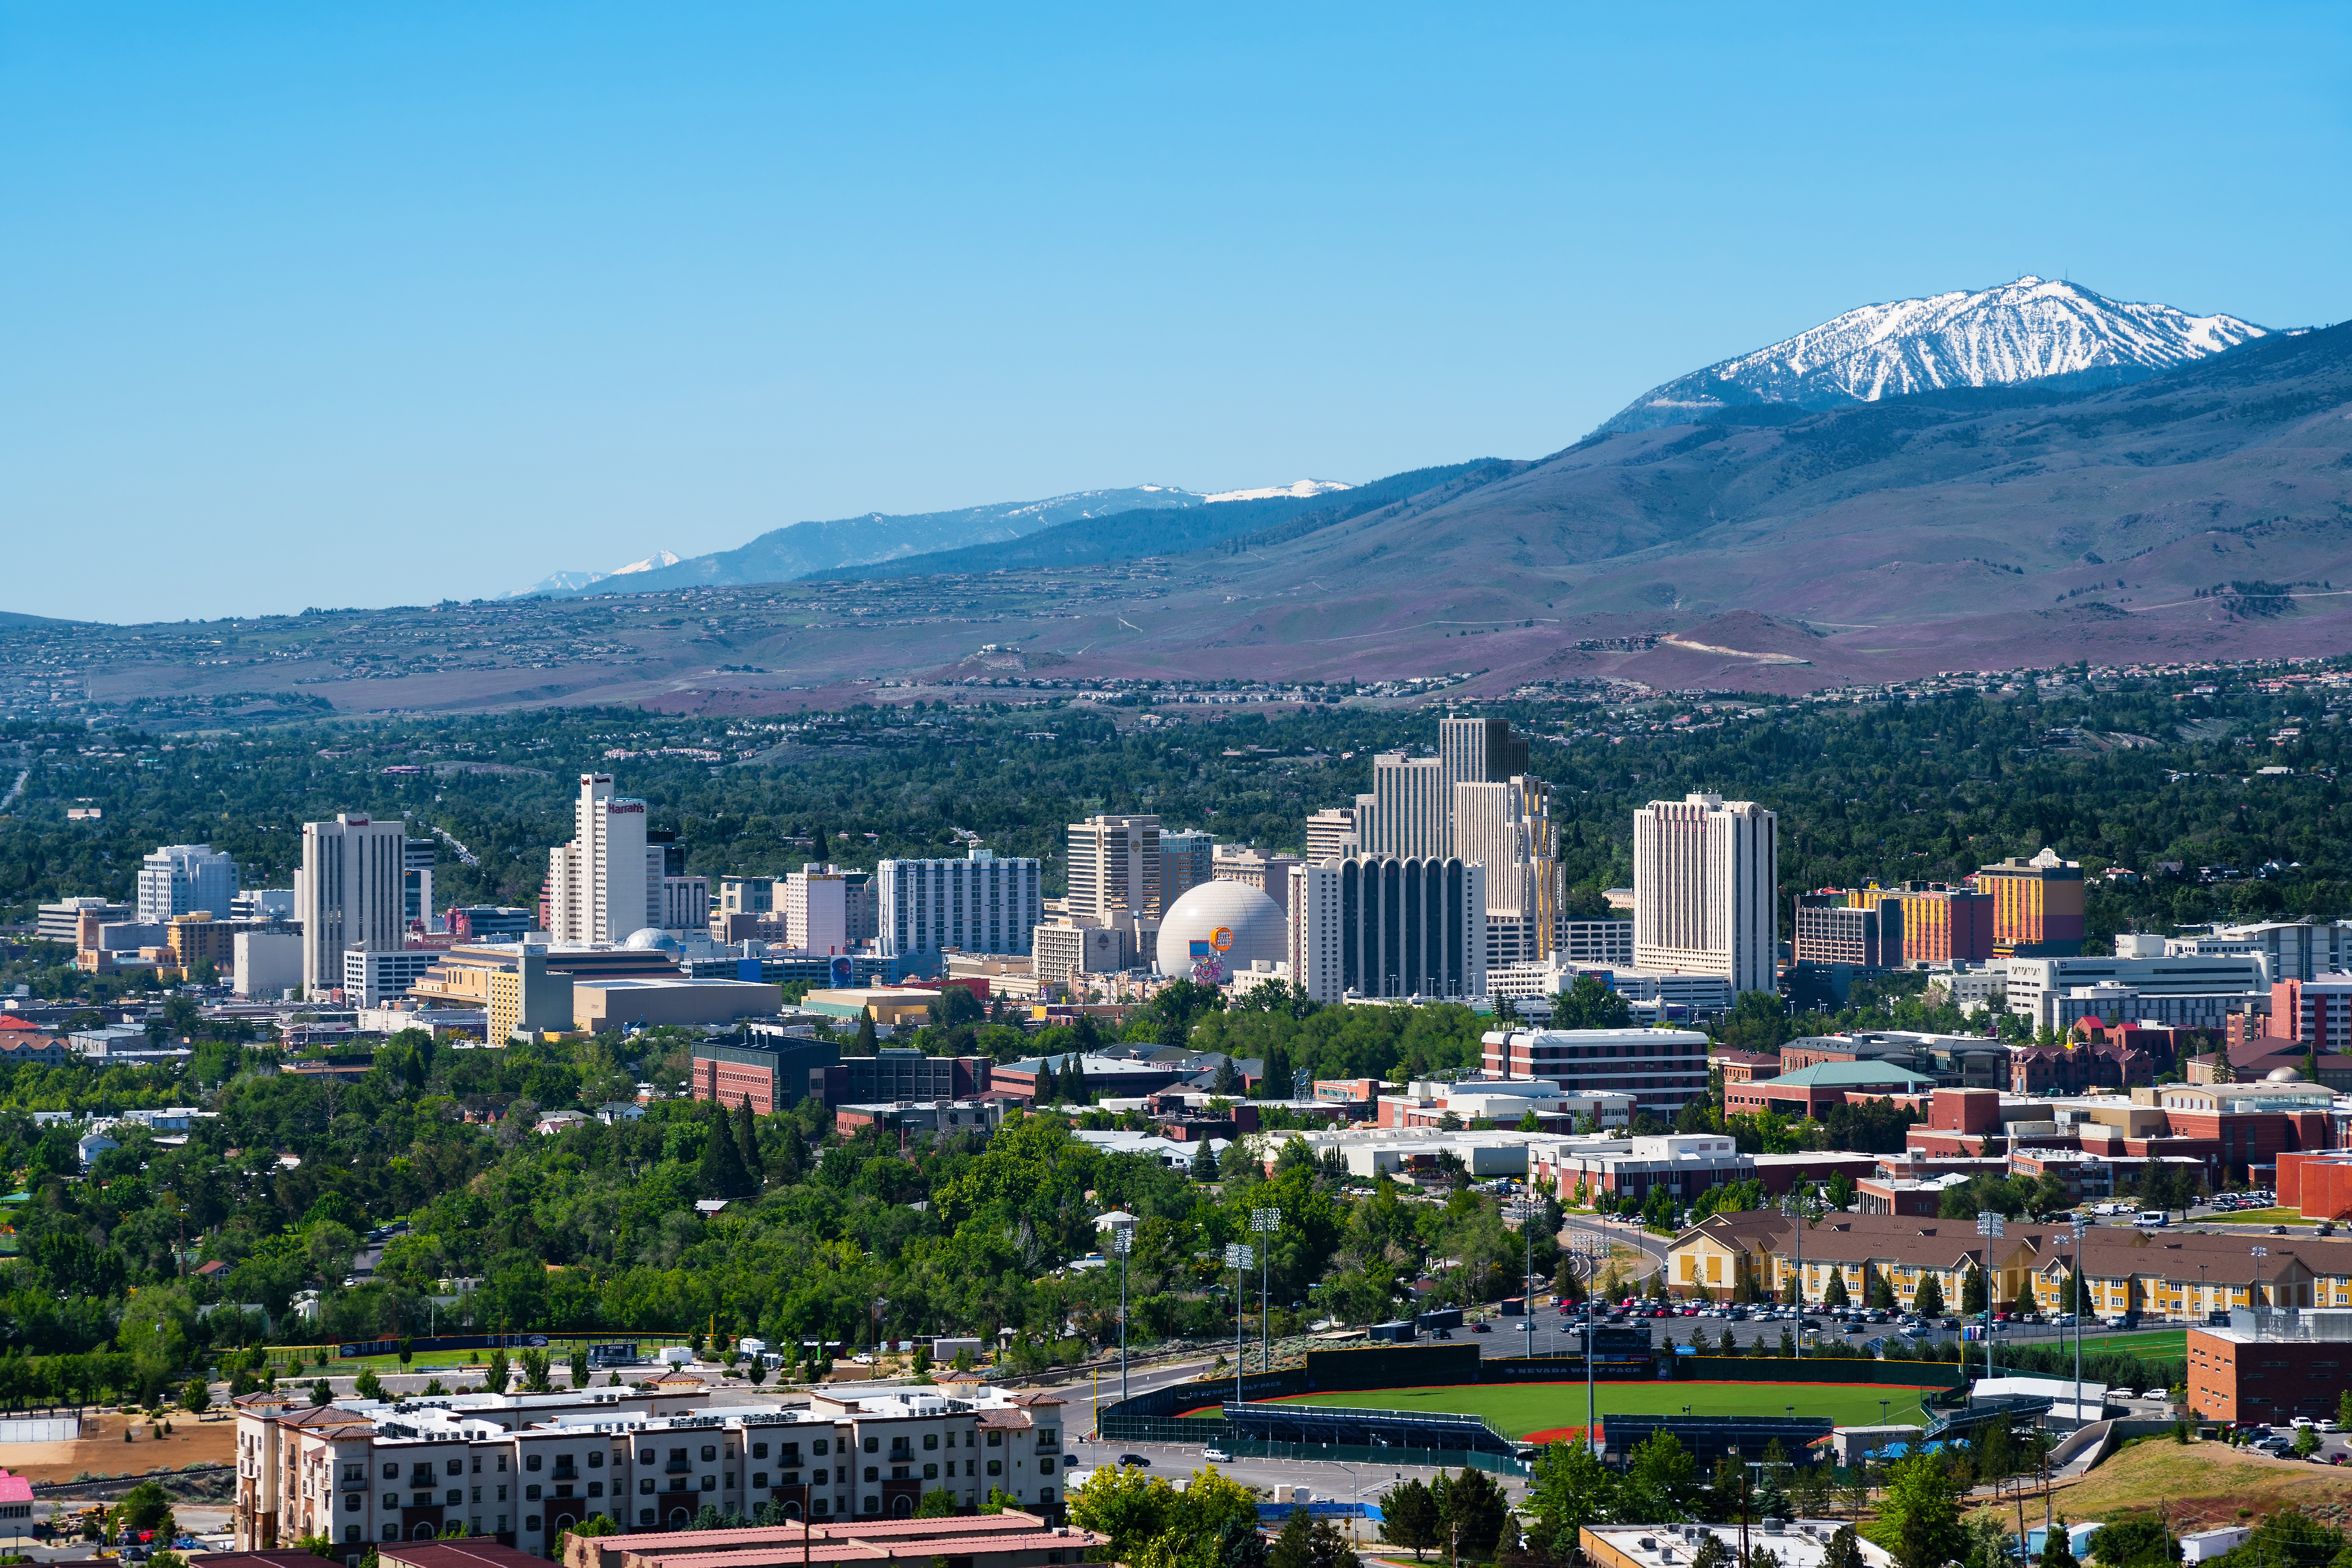 Reno's colorful skyline with a cluster of large casino buildings at the center, with a snowcapped mountains in the background.